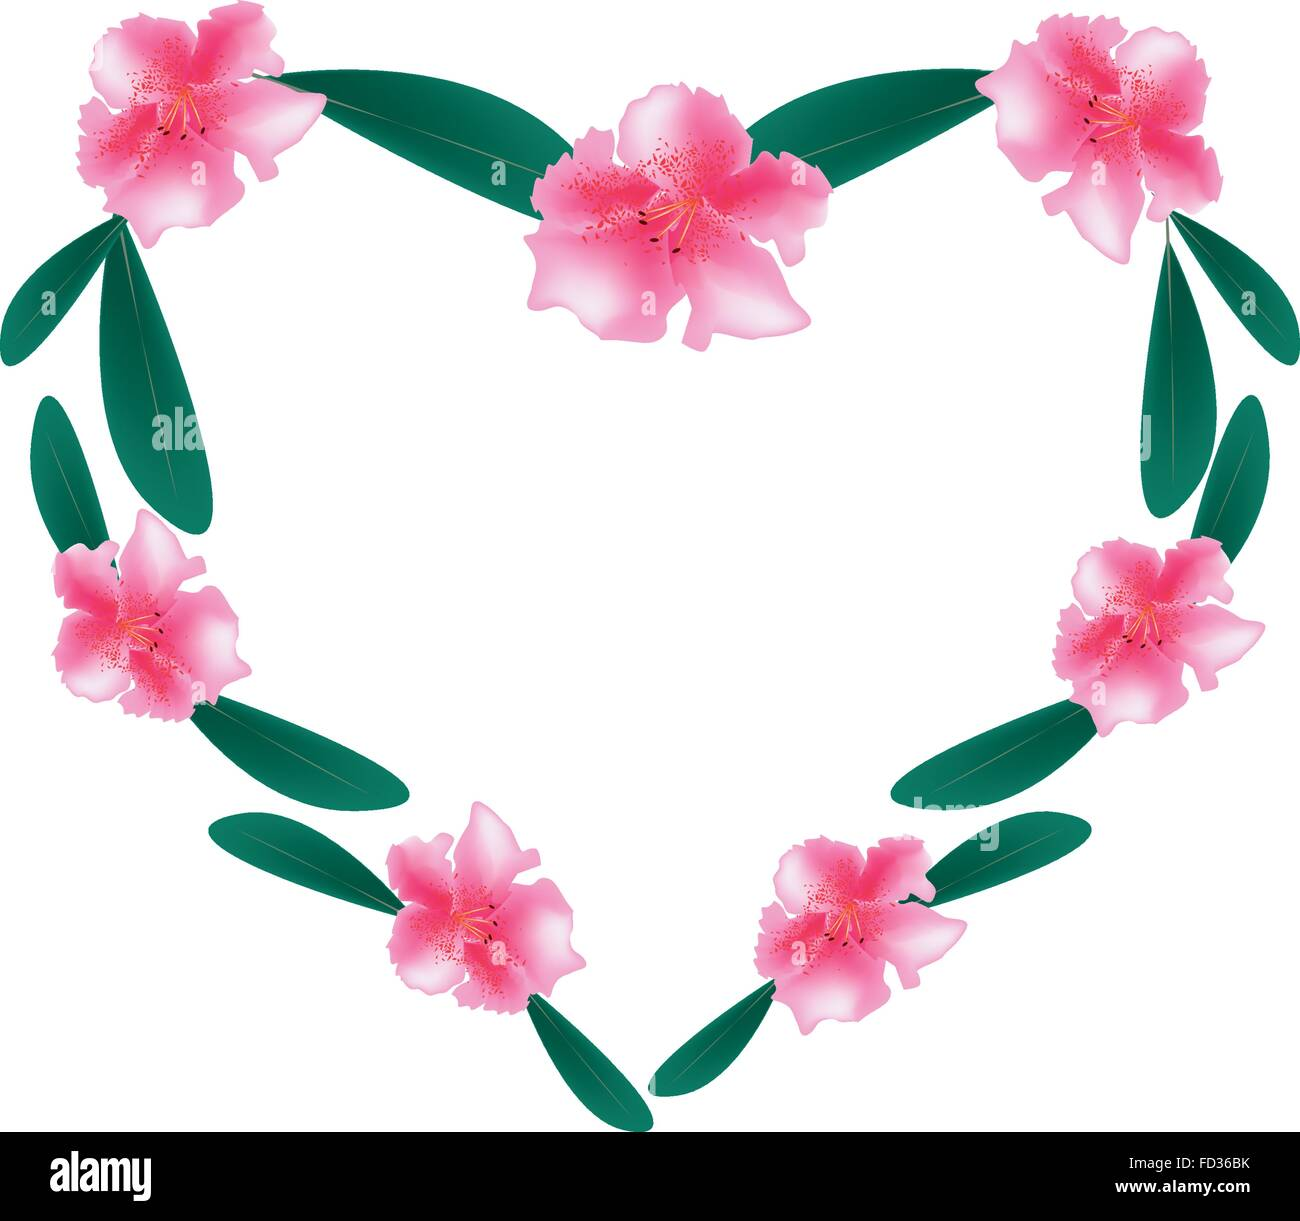 Love Concept, Illustration of Pink Rhododendron Flowers Forming in Heart Shape Isolated on White Background. - Stock Vector